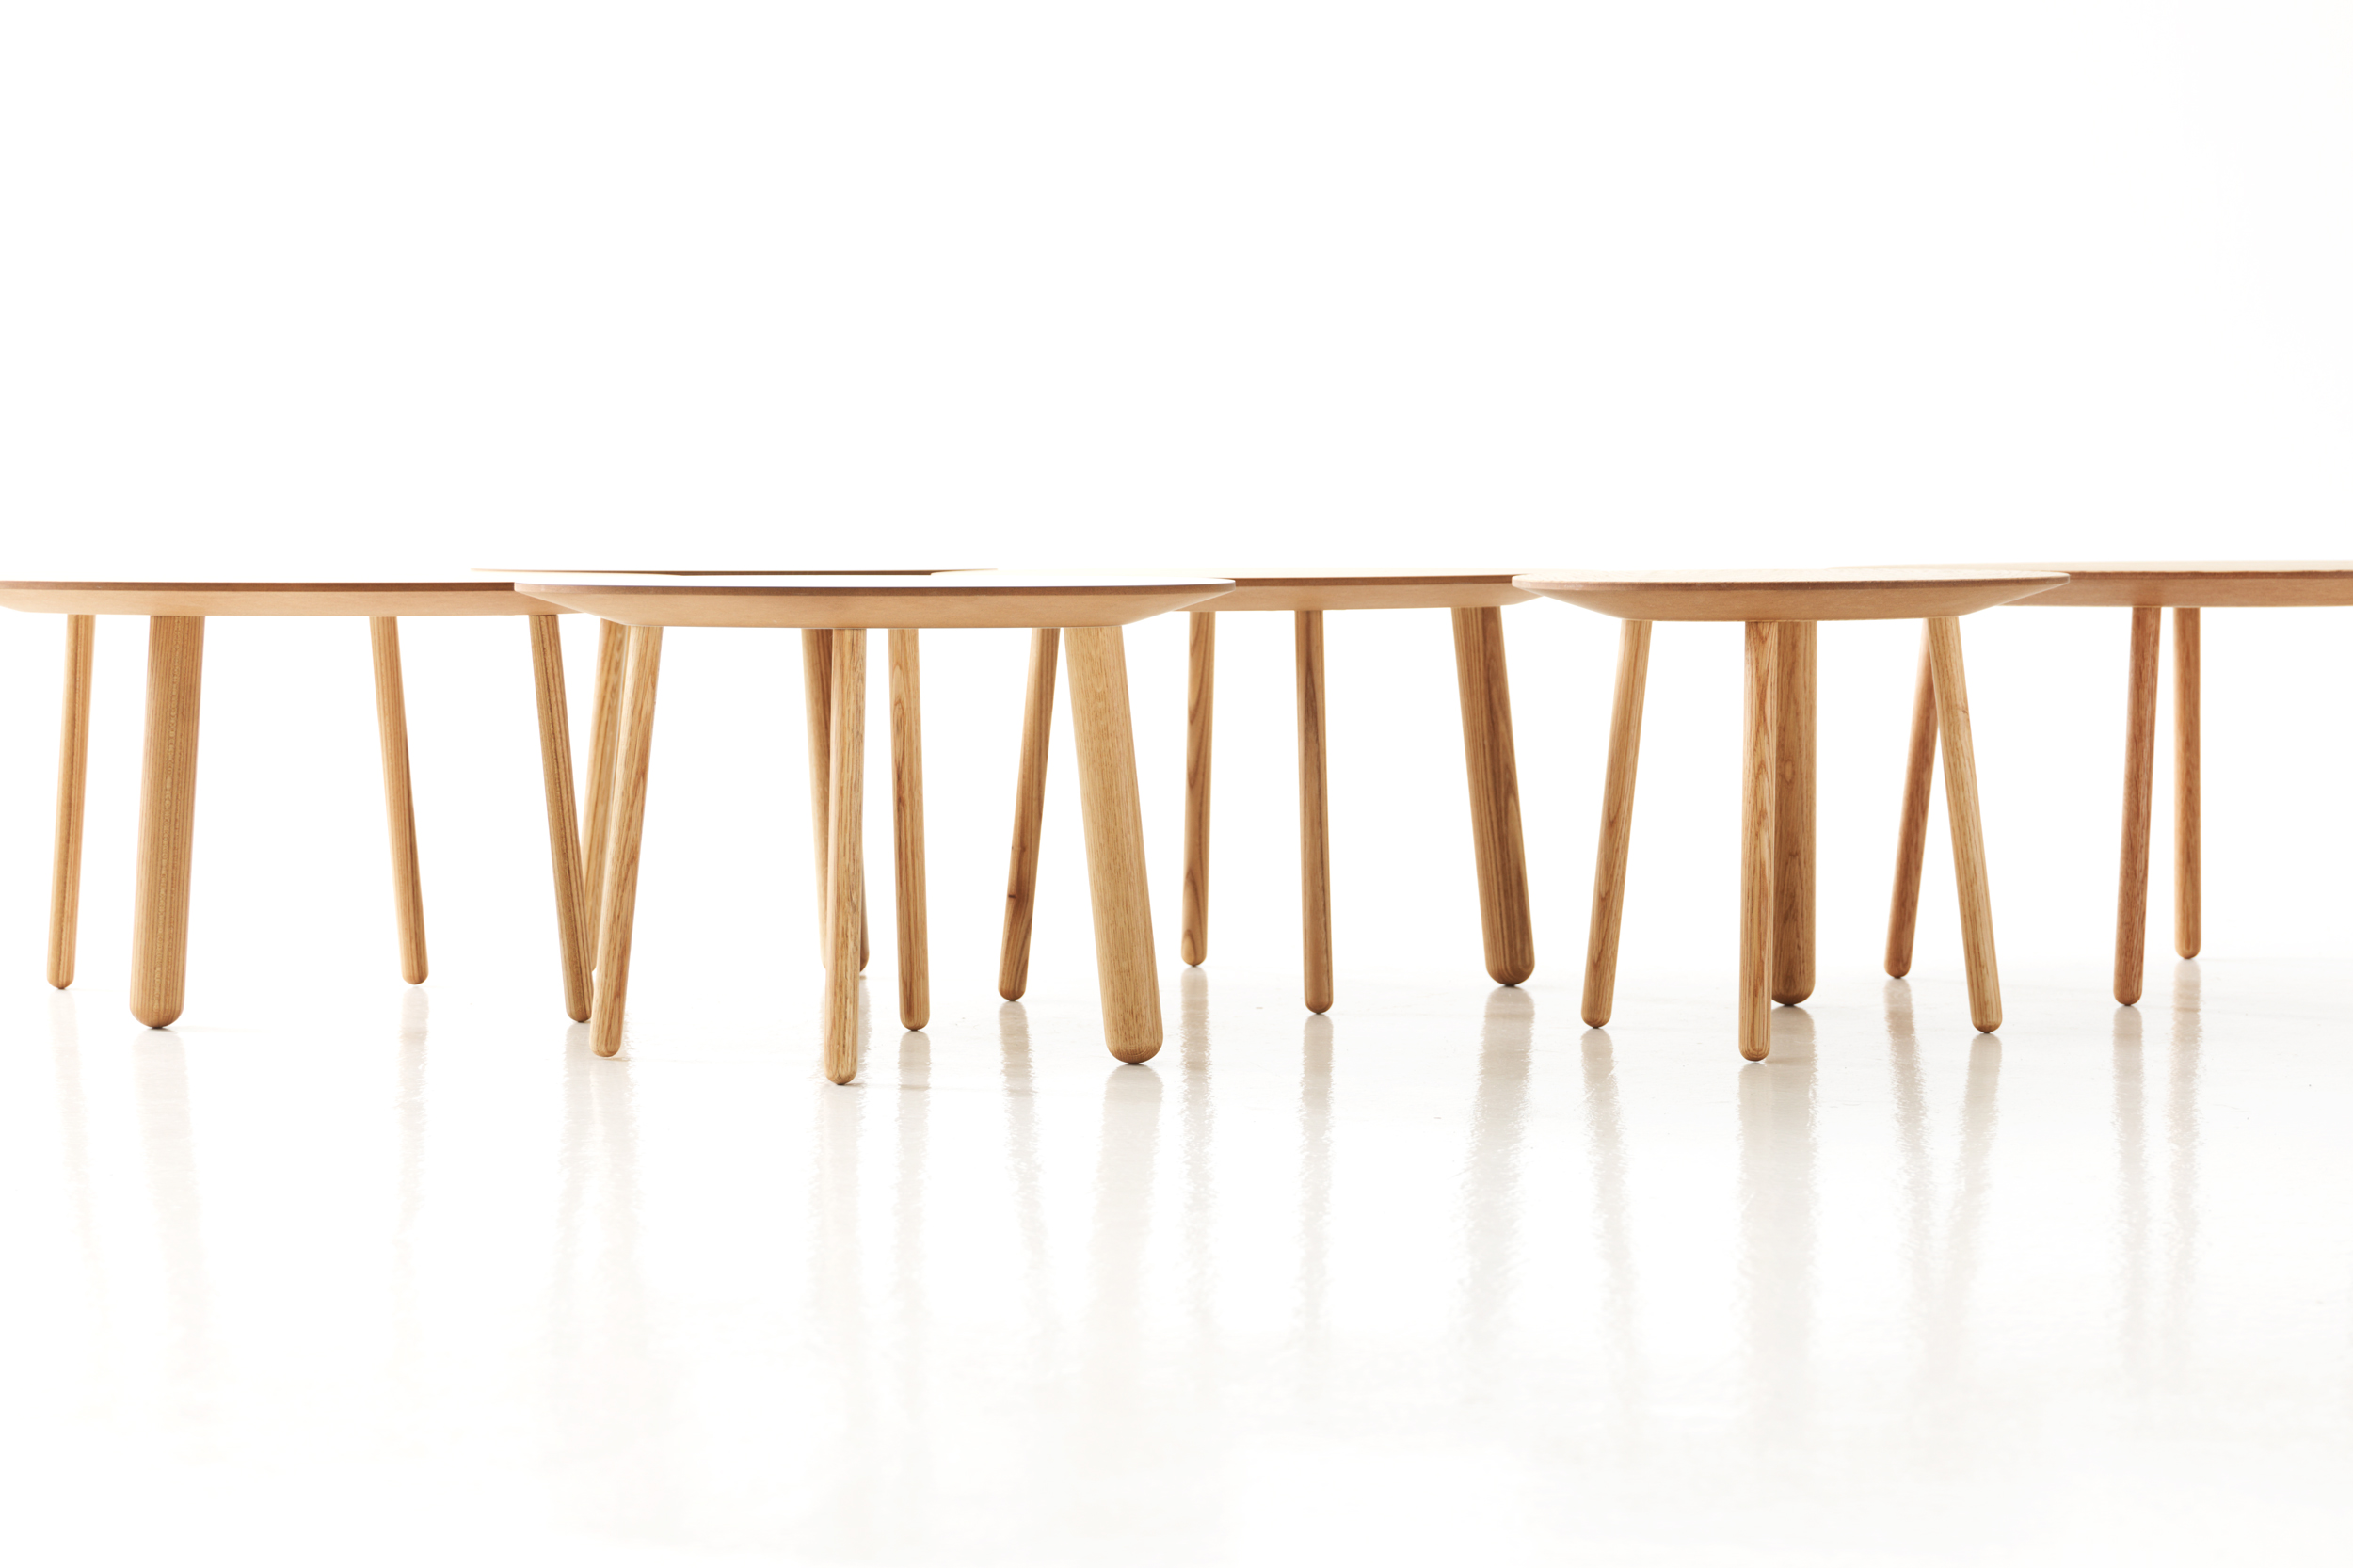 Morris coffee tables featured from the side